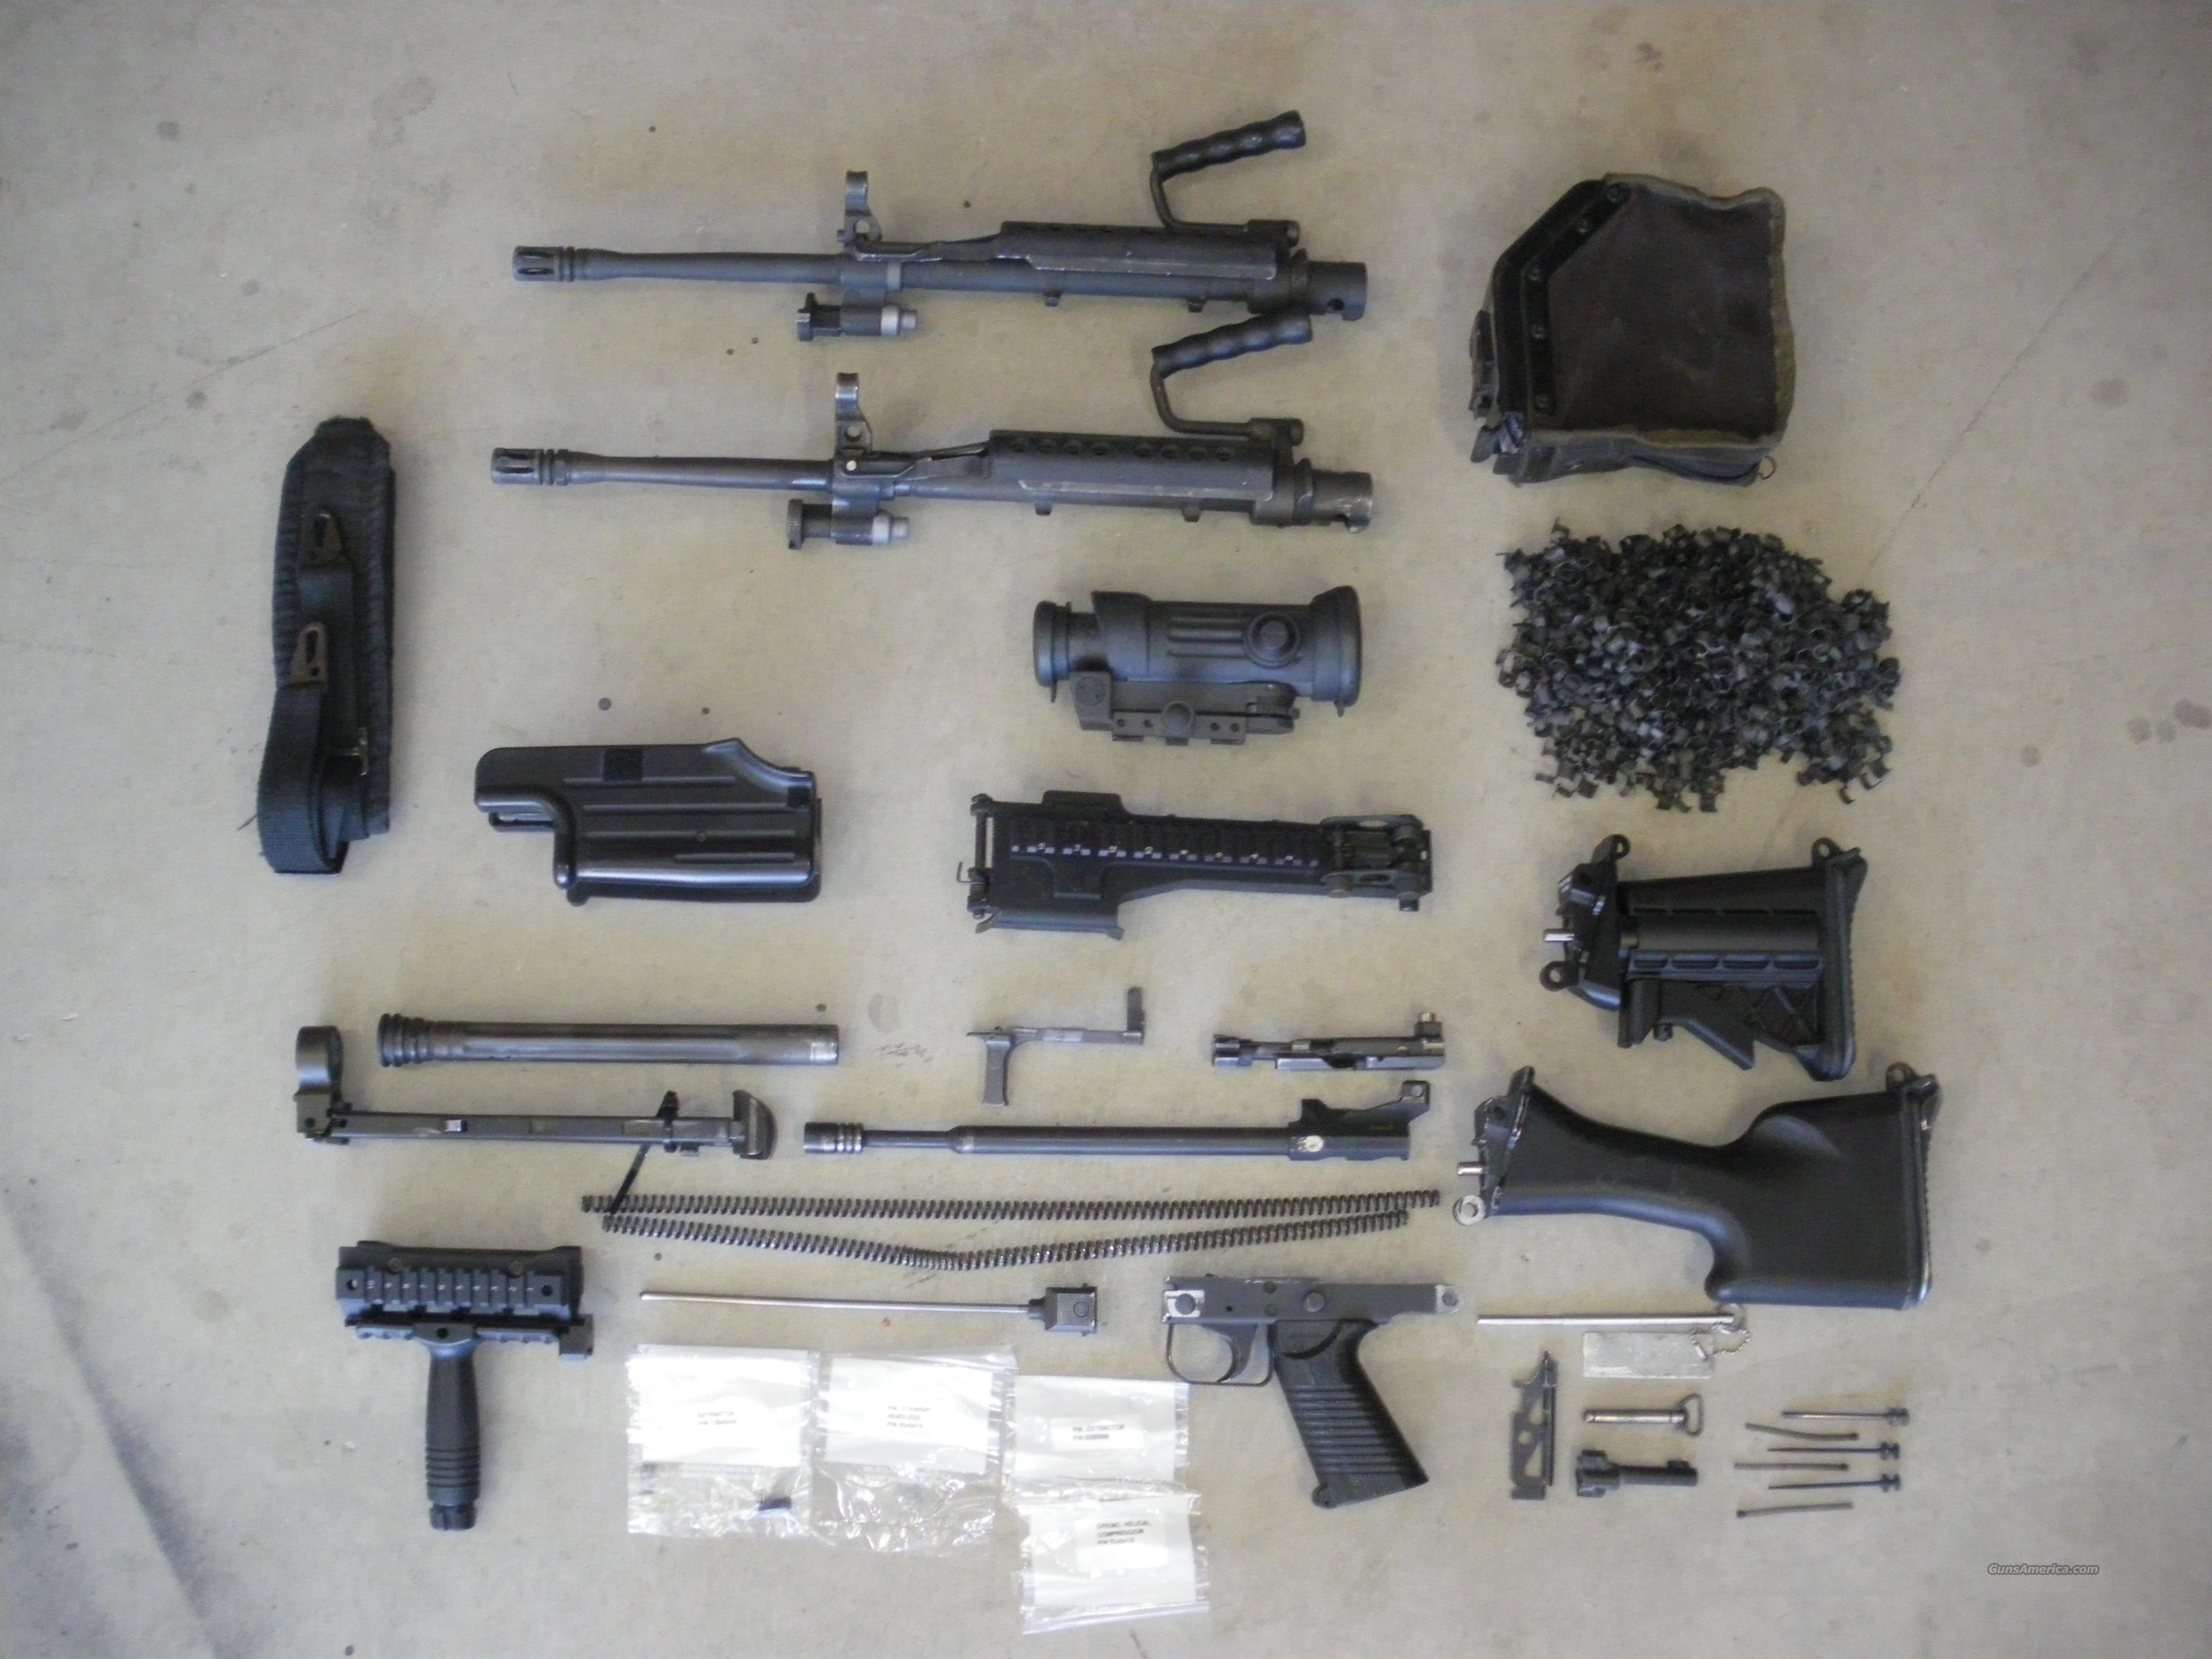 XMG Belt 252dFed AR 252d15 7B47 7DM16 Upper Receiver also No You Cant Download A Gun From The Inter moreover Id photos firearms rifle m16 as well 959806 also M249 SAW  PLETE PARTS KIT W ACCESSORIE. on ar 15 components diagram